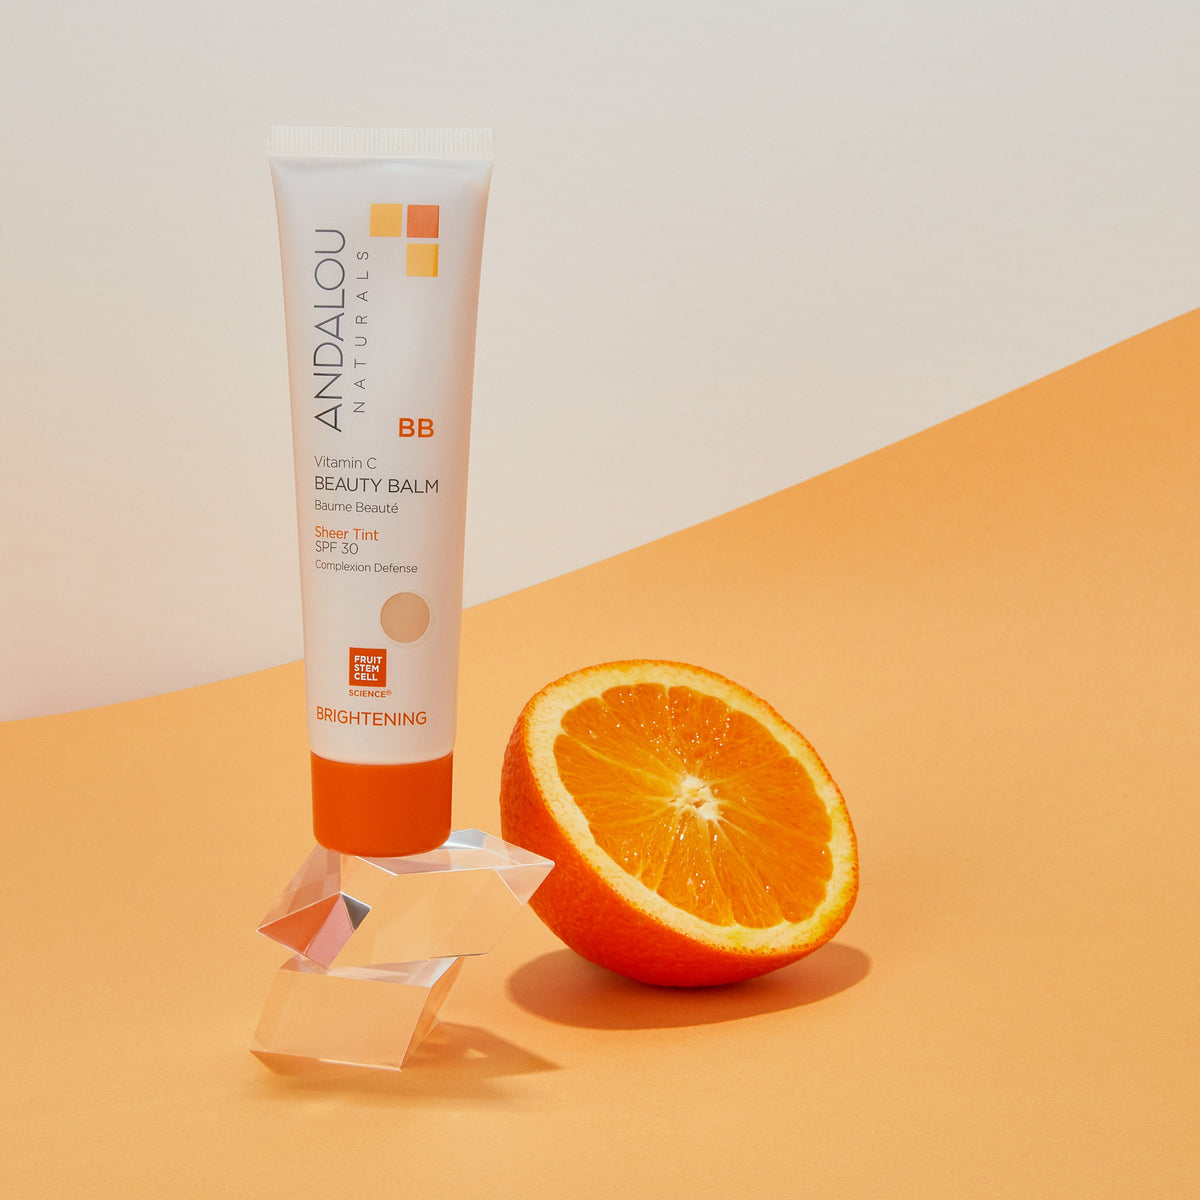 Andalou Naturals Brightening Vitamin C BB Beauty Balm Sheer Tint SPF 30 with navel orange